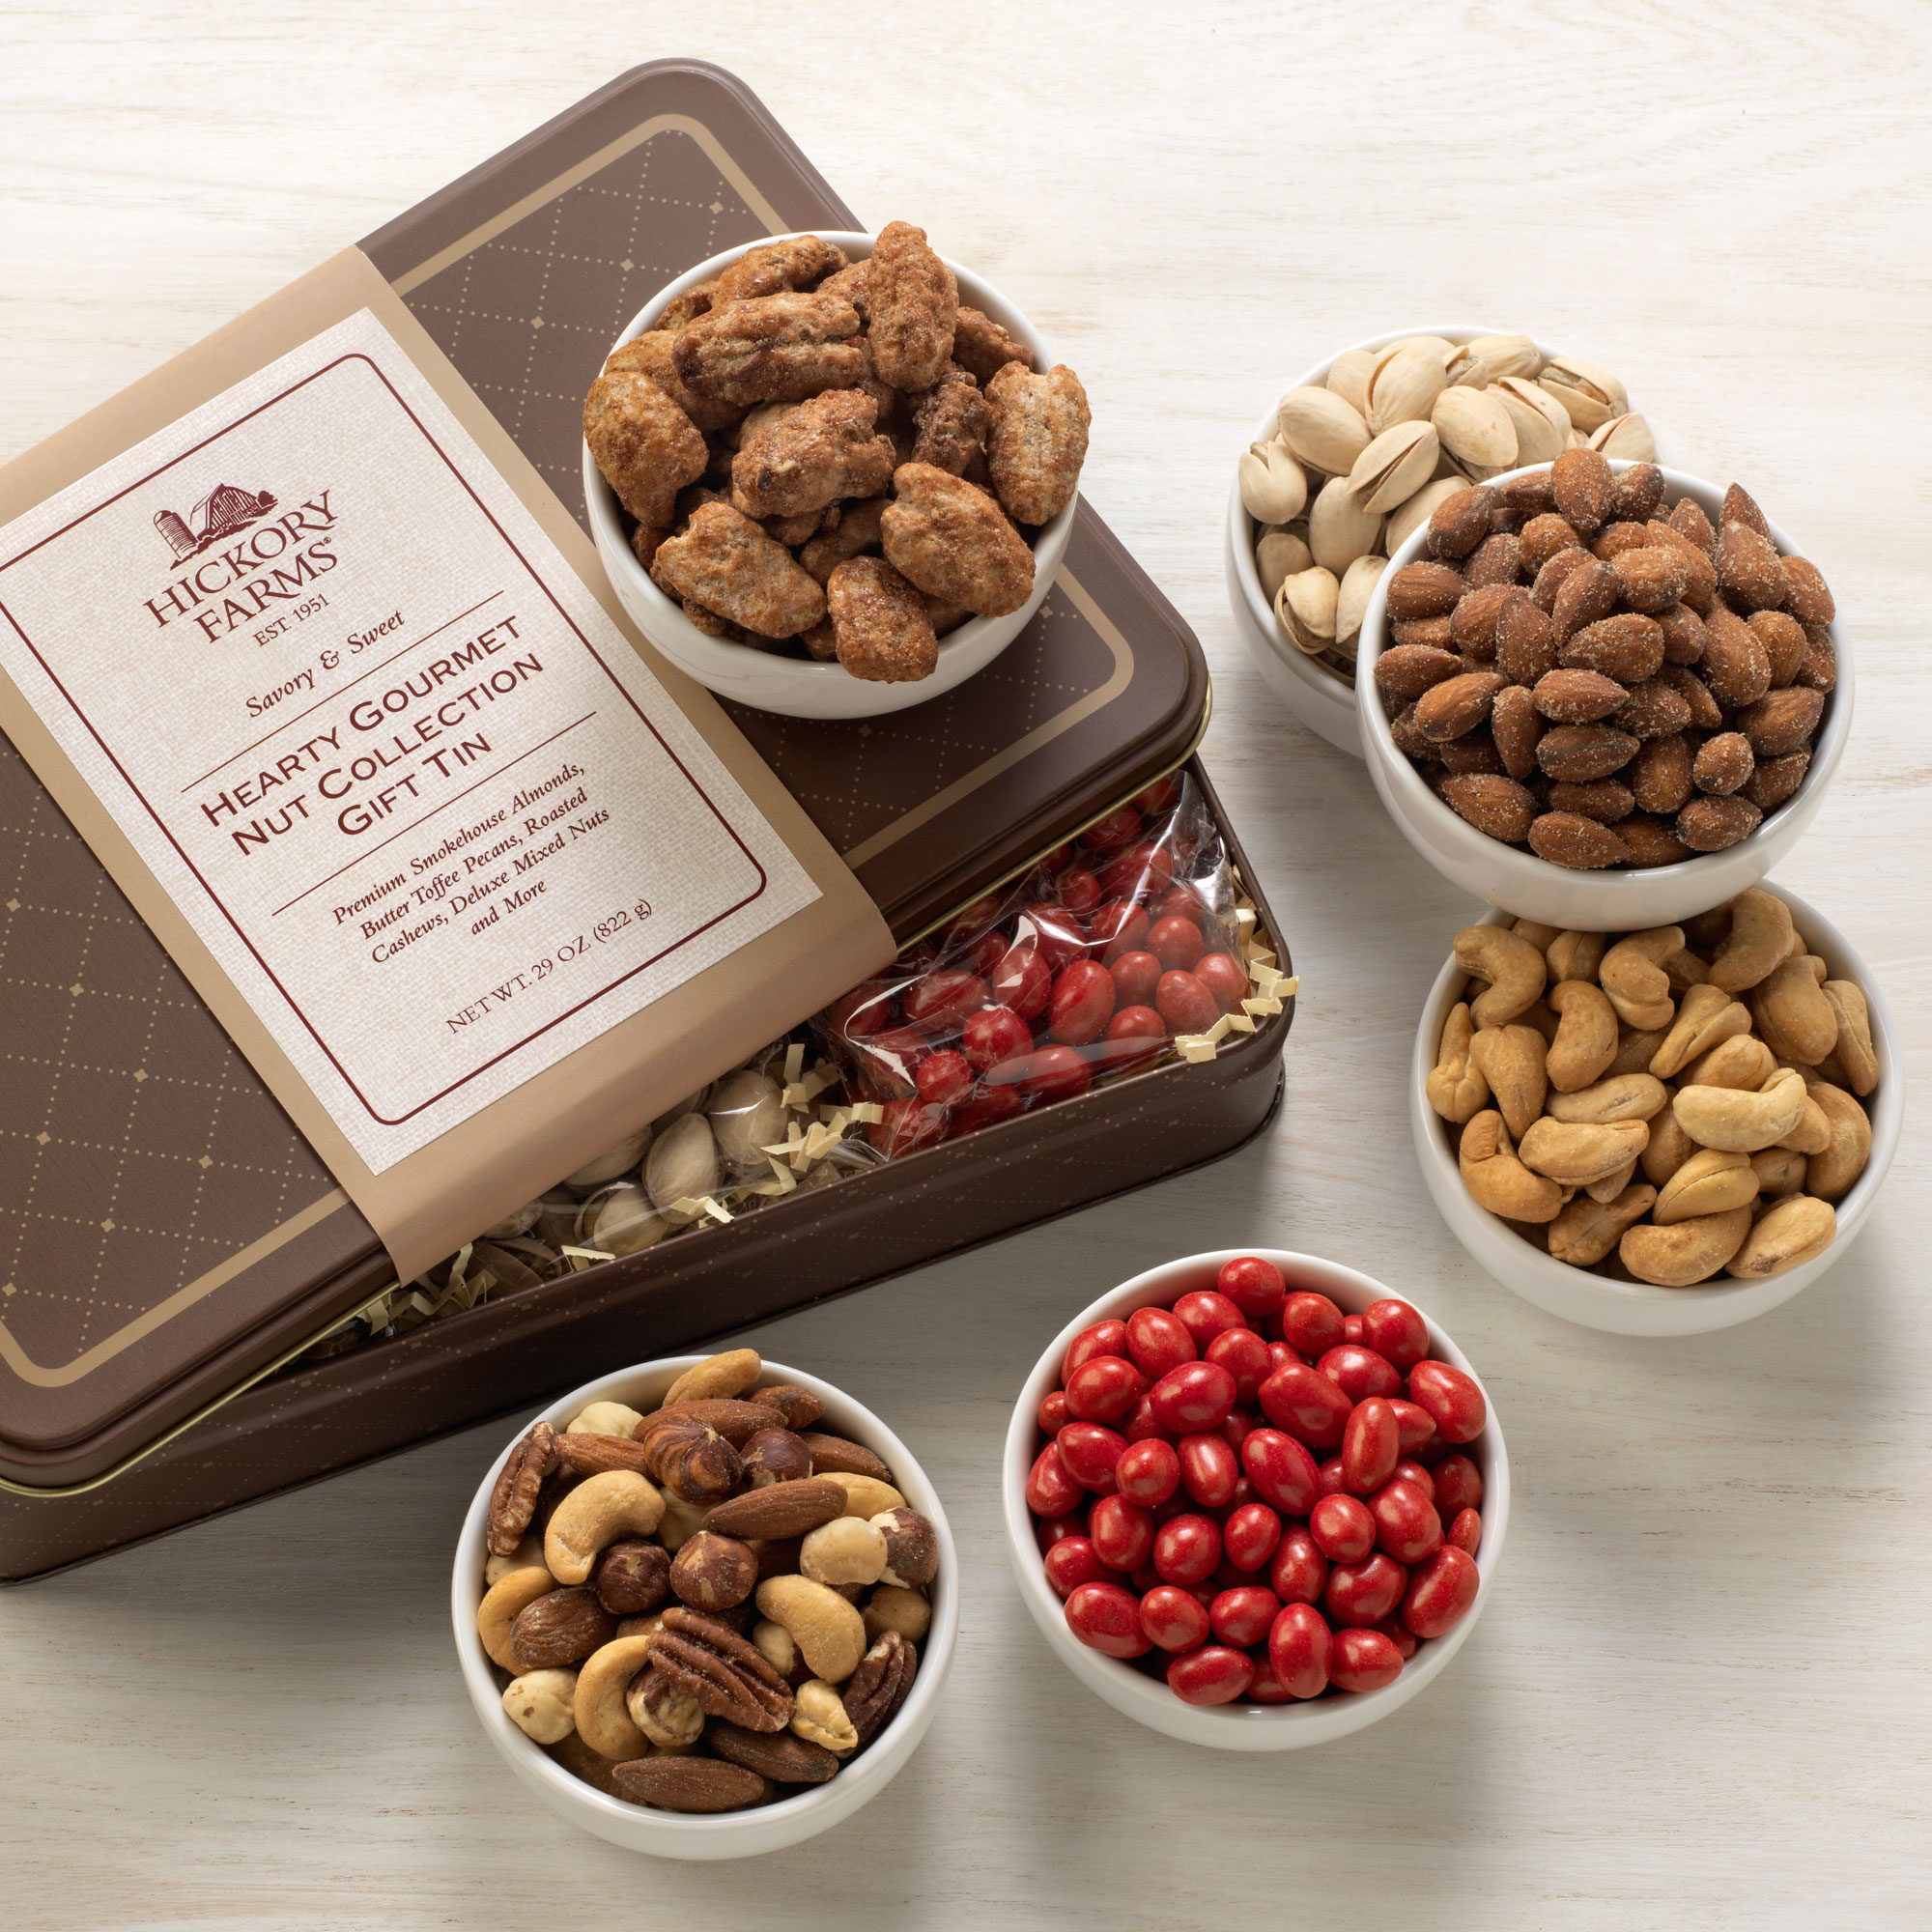 Gourmet Dried Fruit and Nut Snack Gift Gifting ideas Fruit gifts